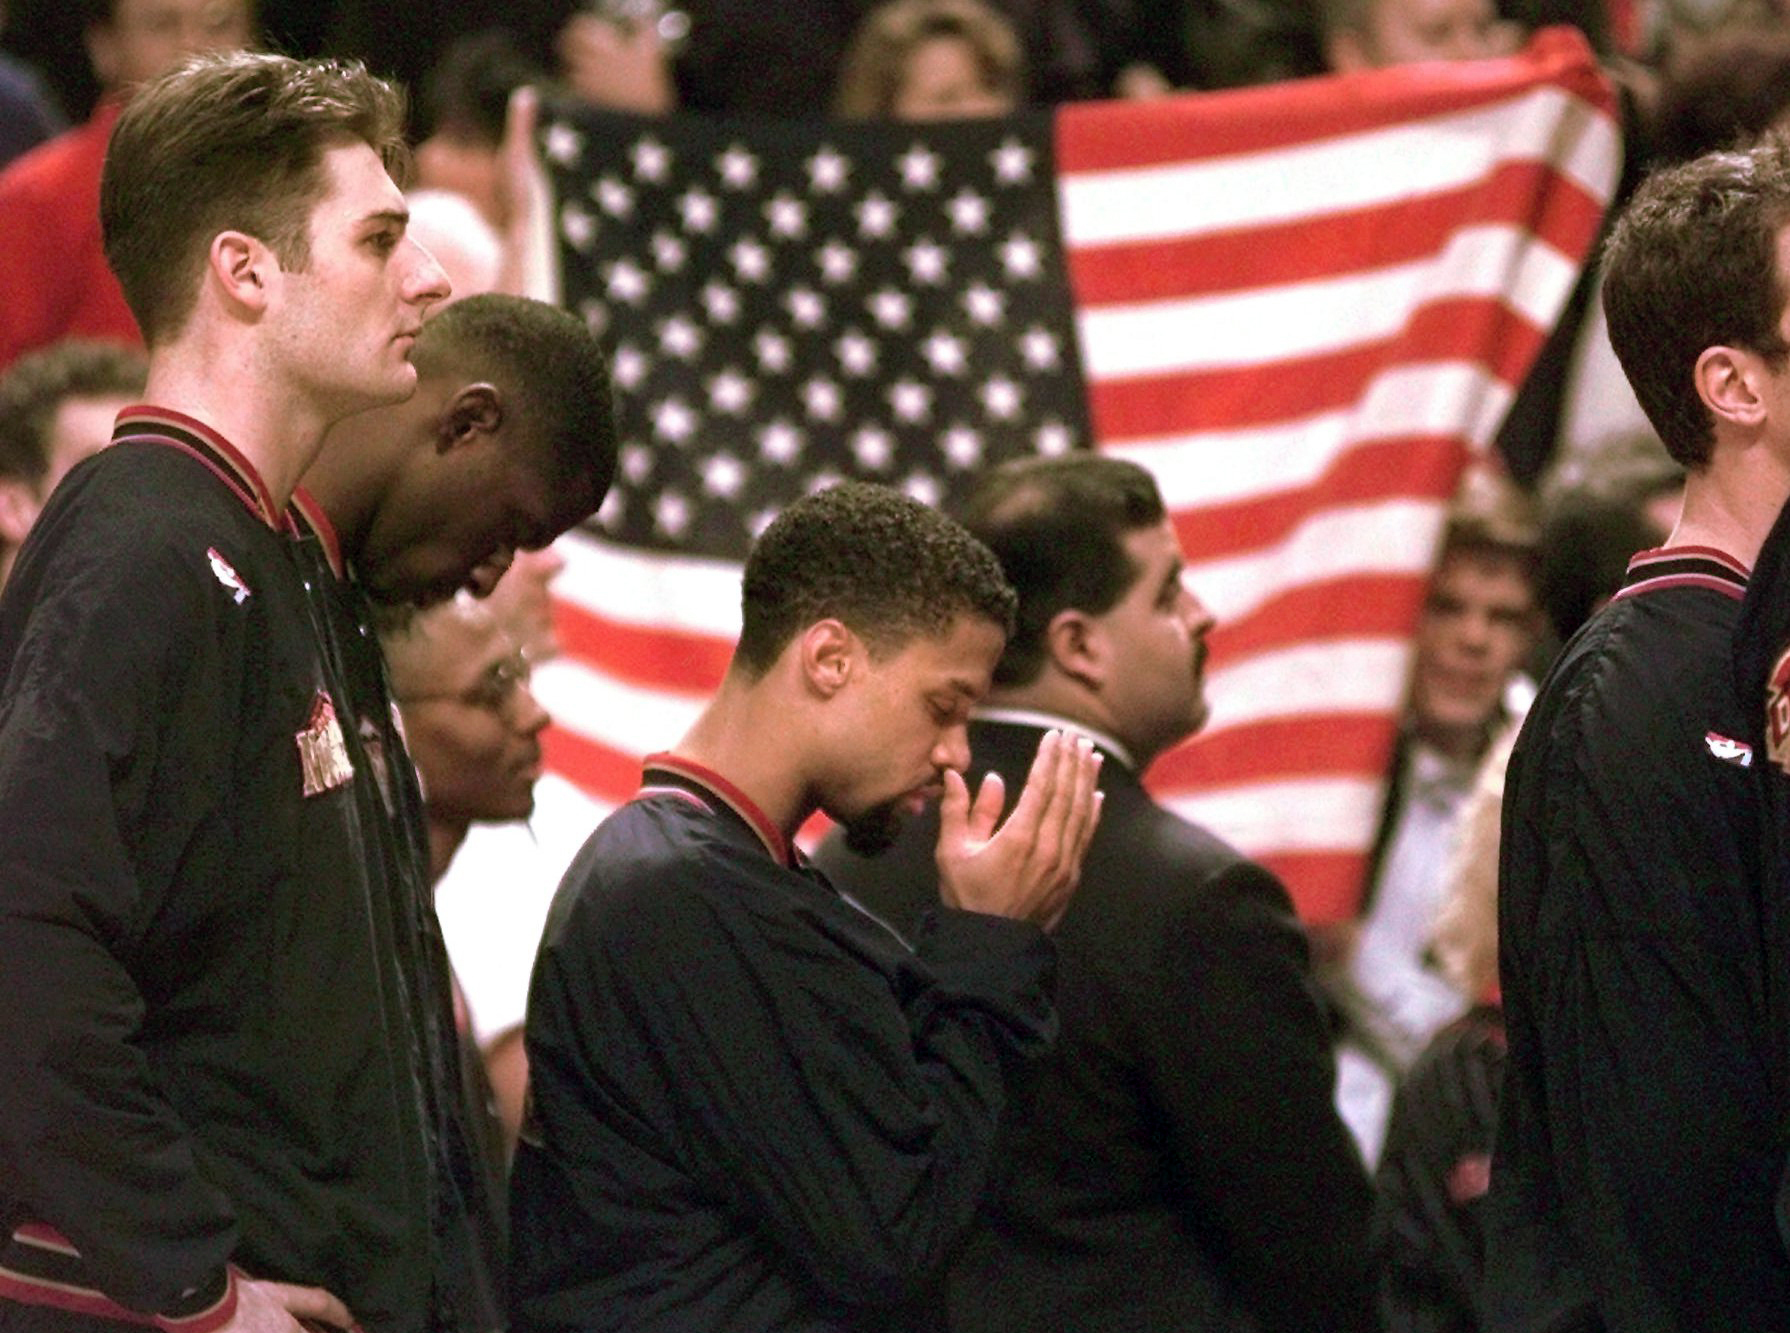 Mahmoud Abdul-Rauf was suspended for one game during the 1995-96 season for refusing to stand during the national anthem. Former NBA commissioner David Stern was the one who made the call.